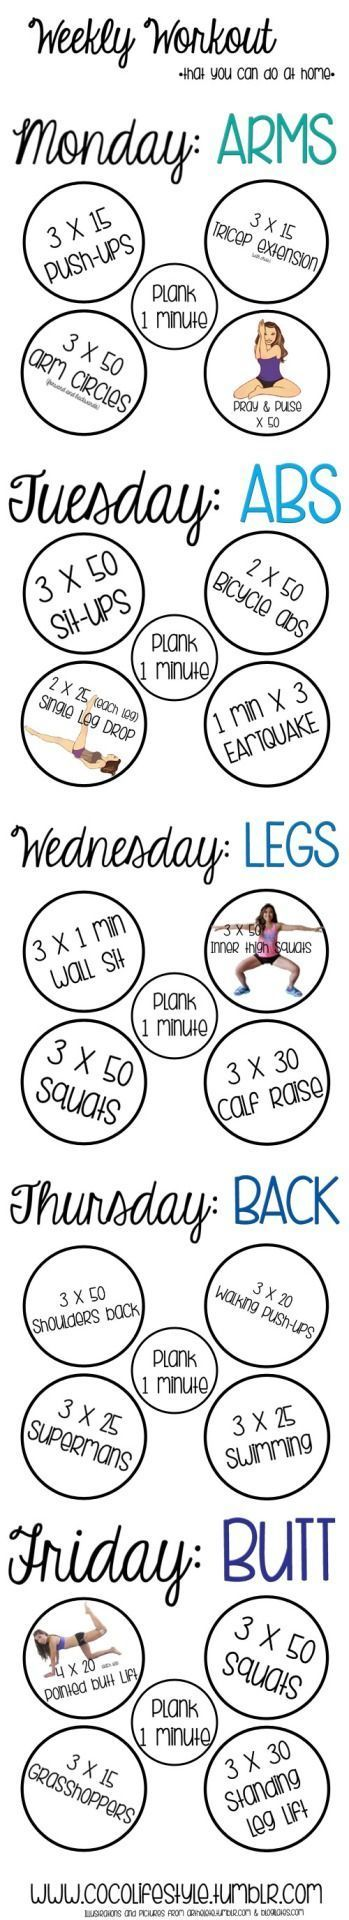 Try this weekly workout plan when you need to lose weight fast It